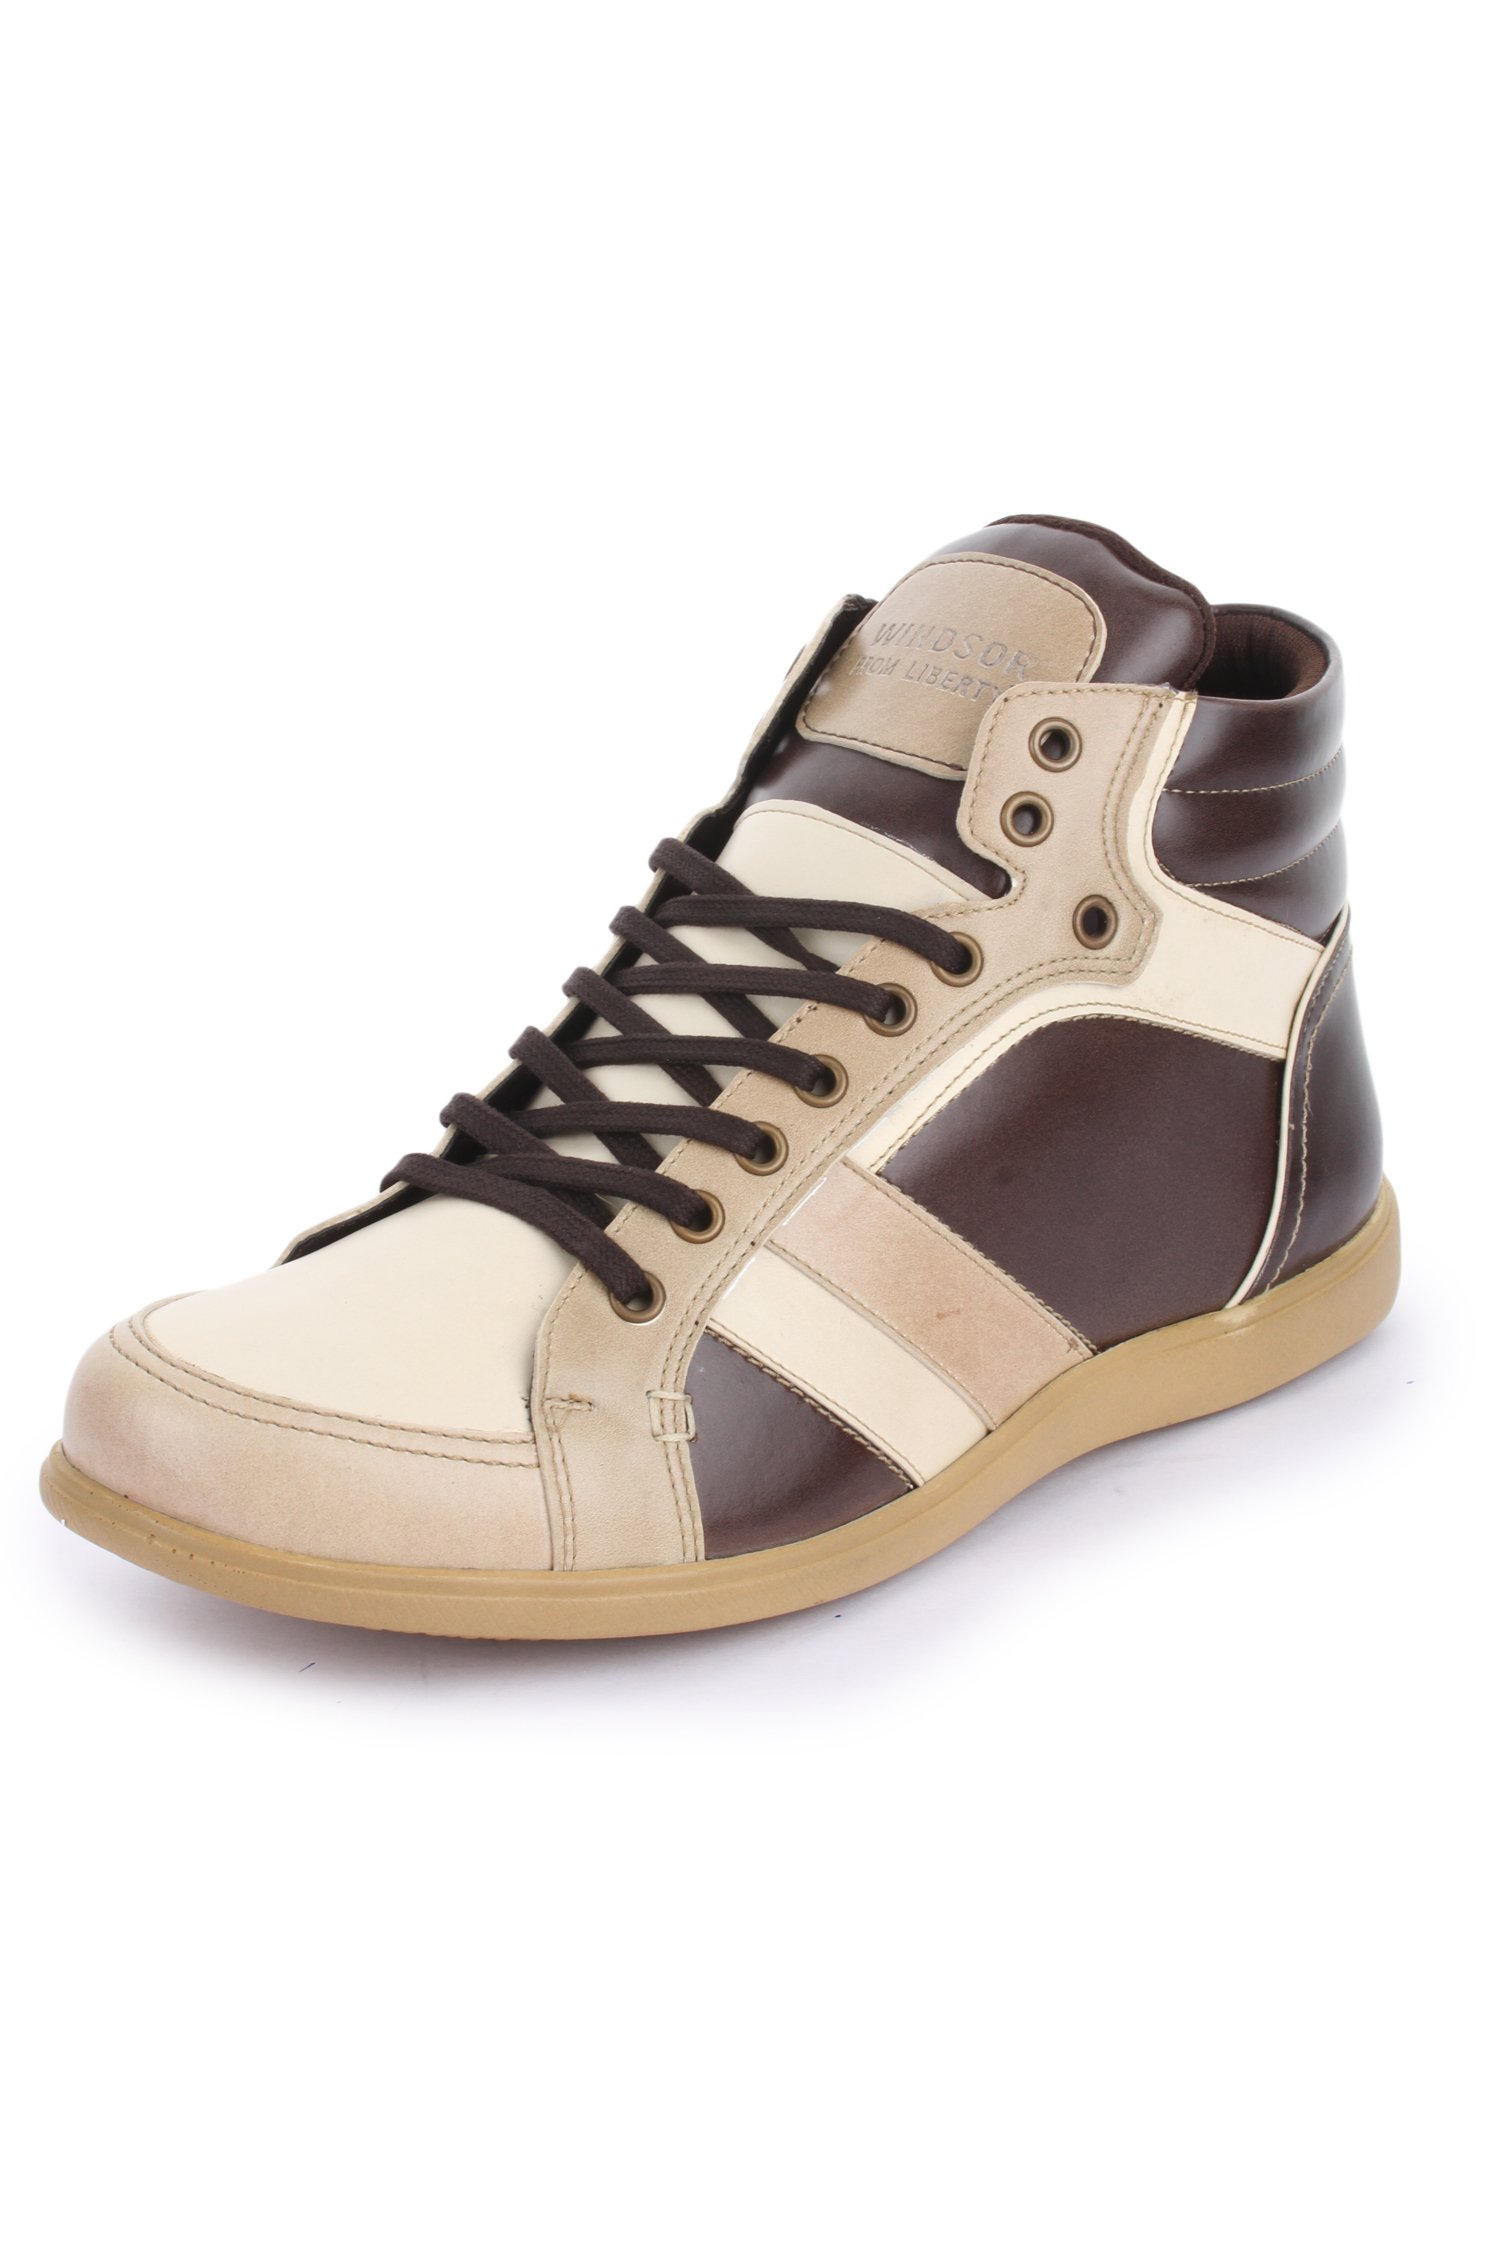 Liberty Casual High Top Fashion Sneakers Beige 10 D(M) Us 14